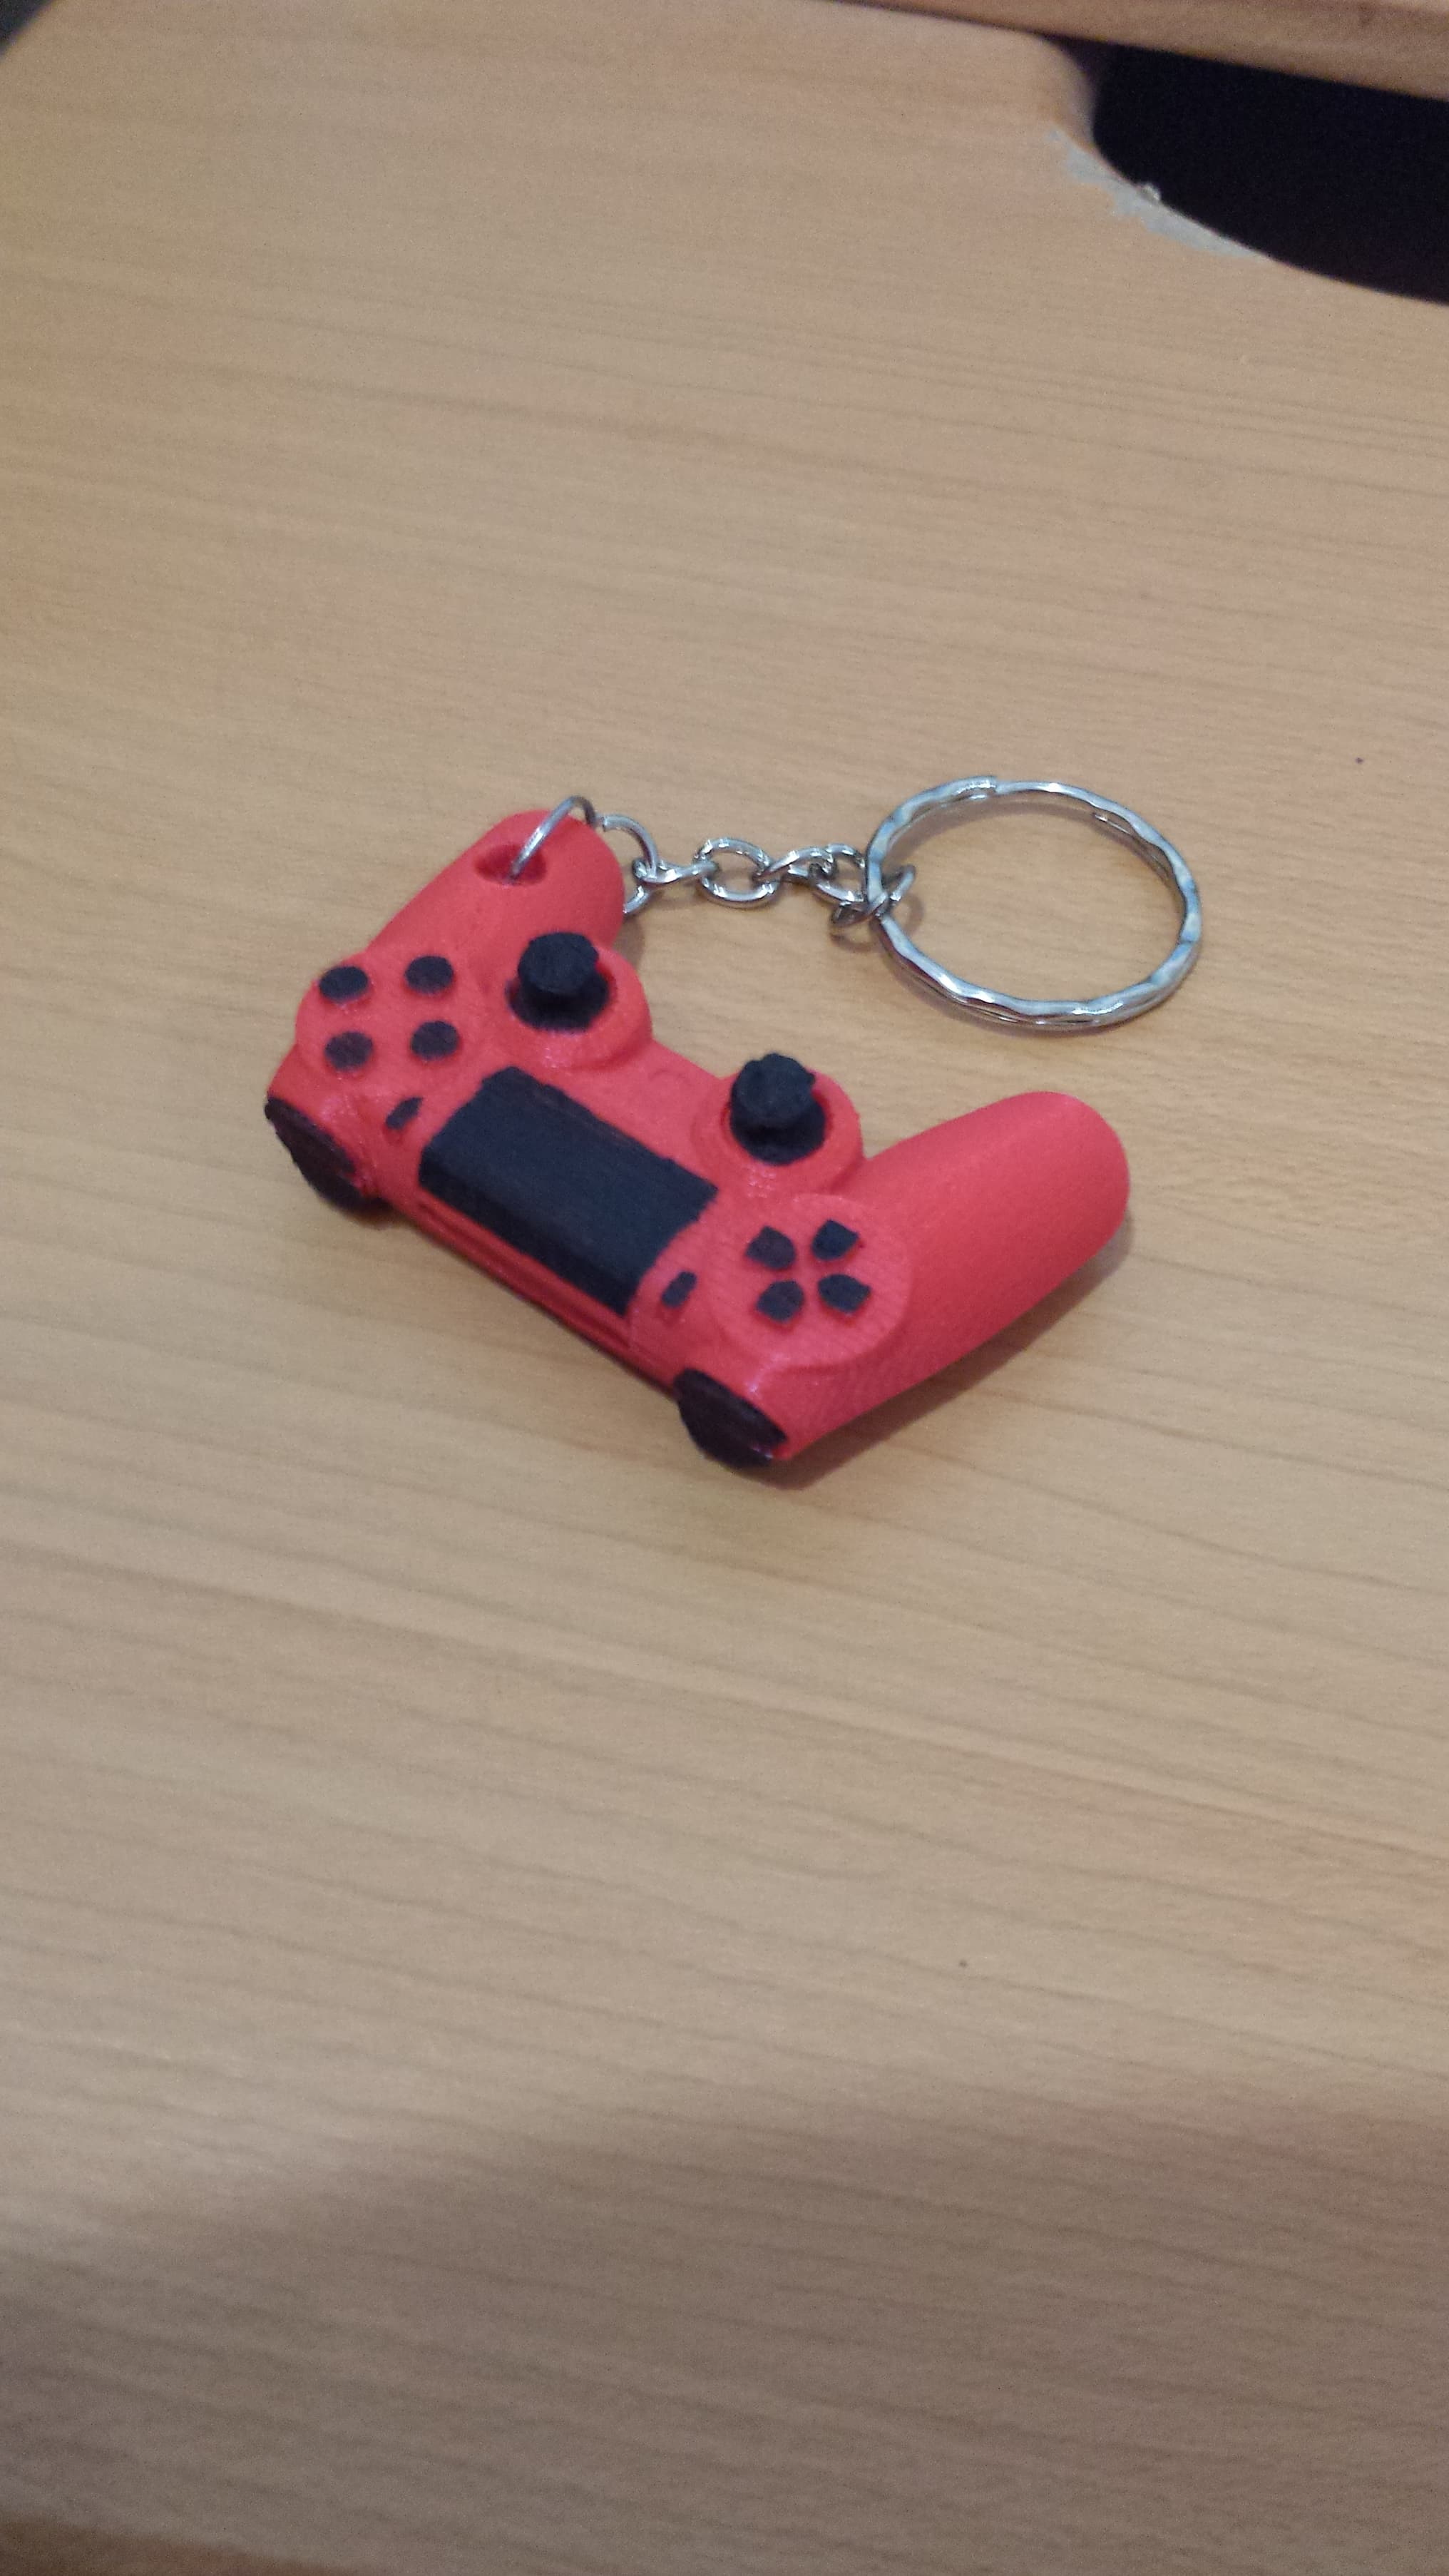 PS4 Controller Keyring by egnarts23